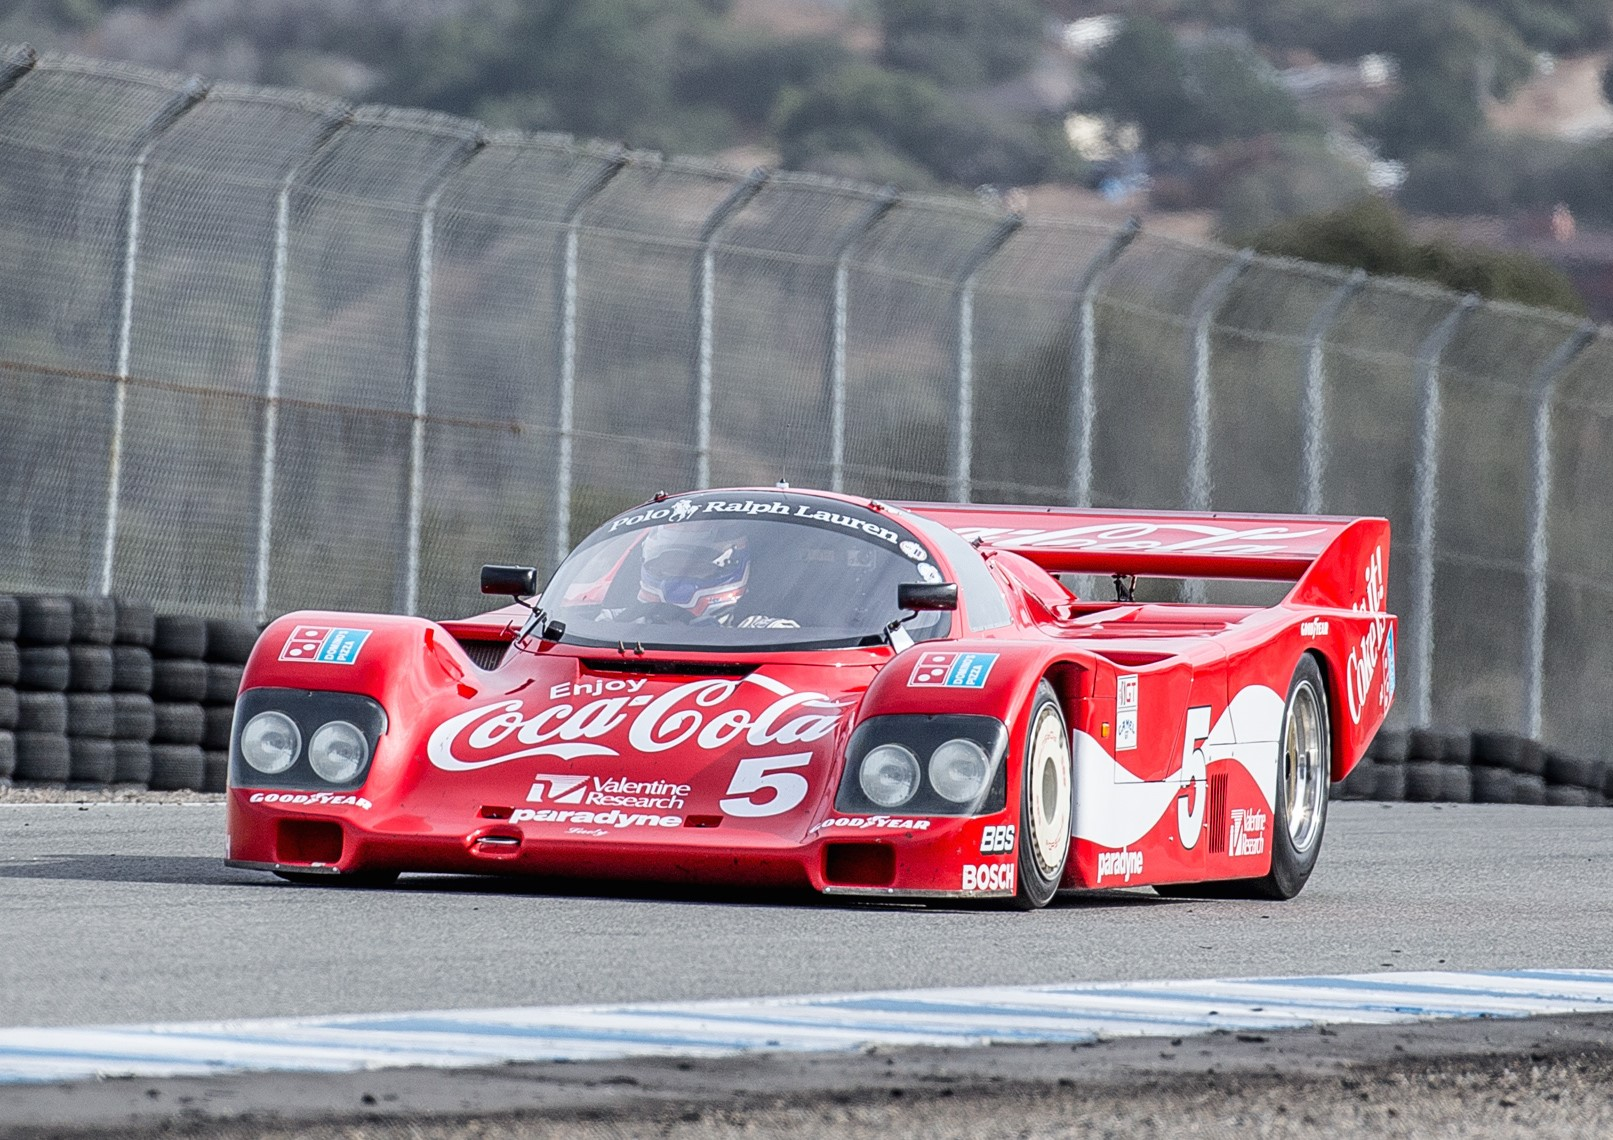 Laguna seca race car front three-quarter action